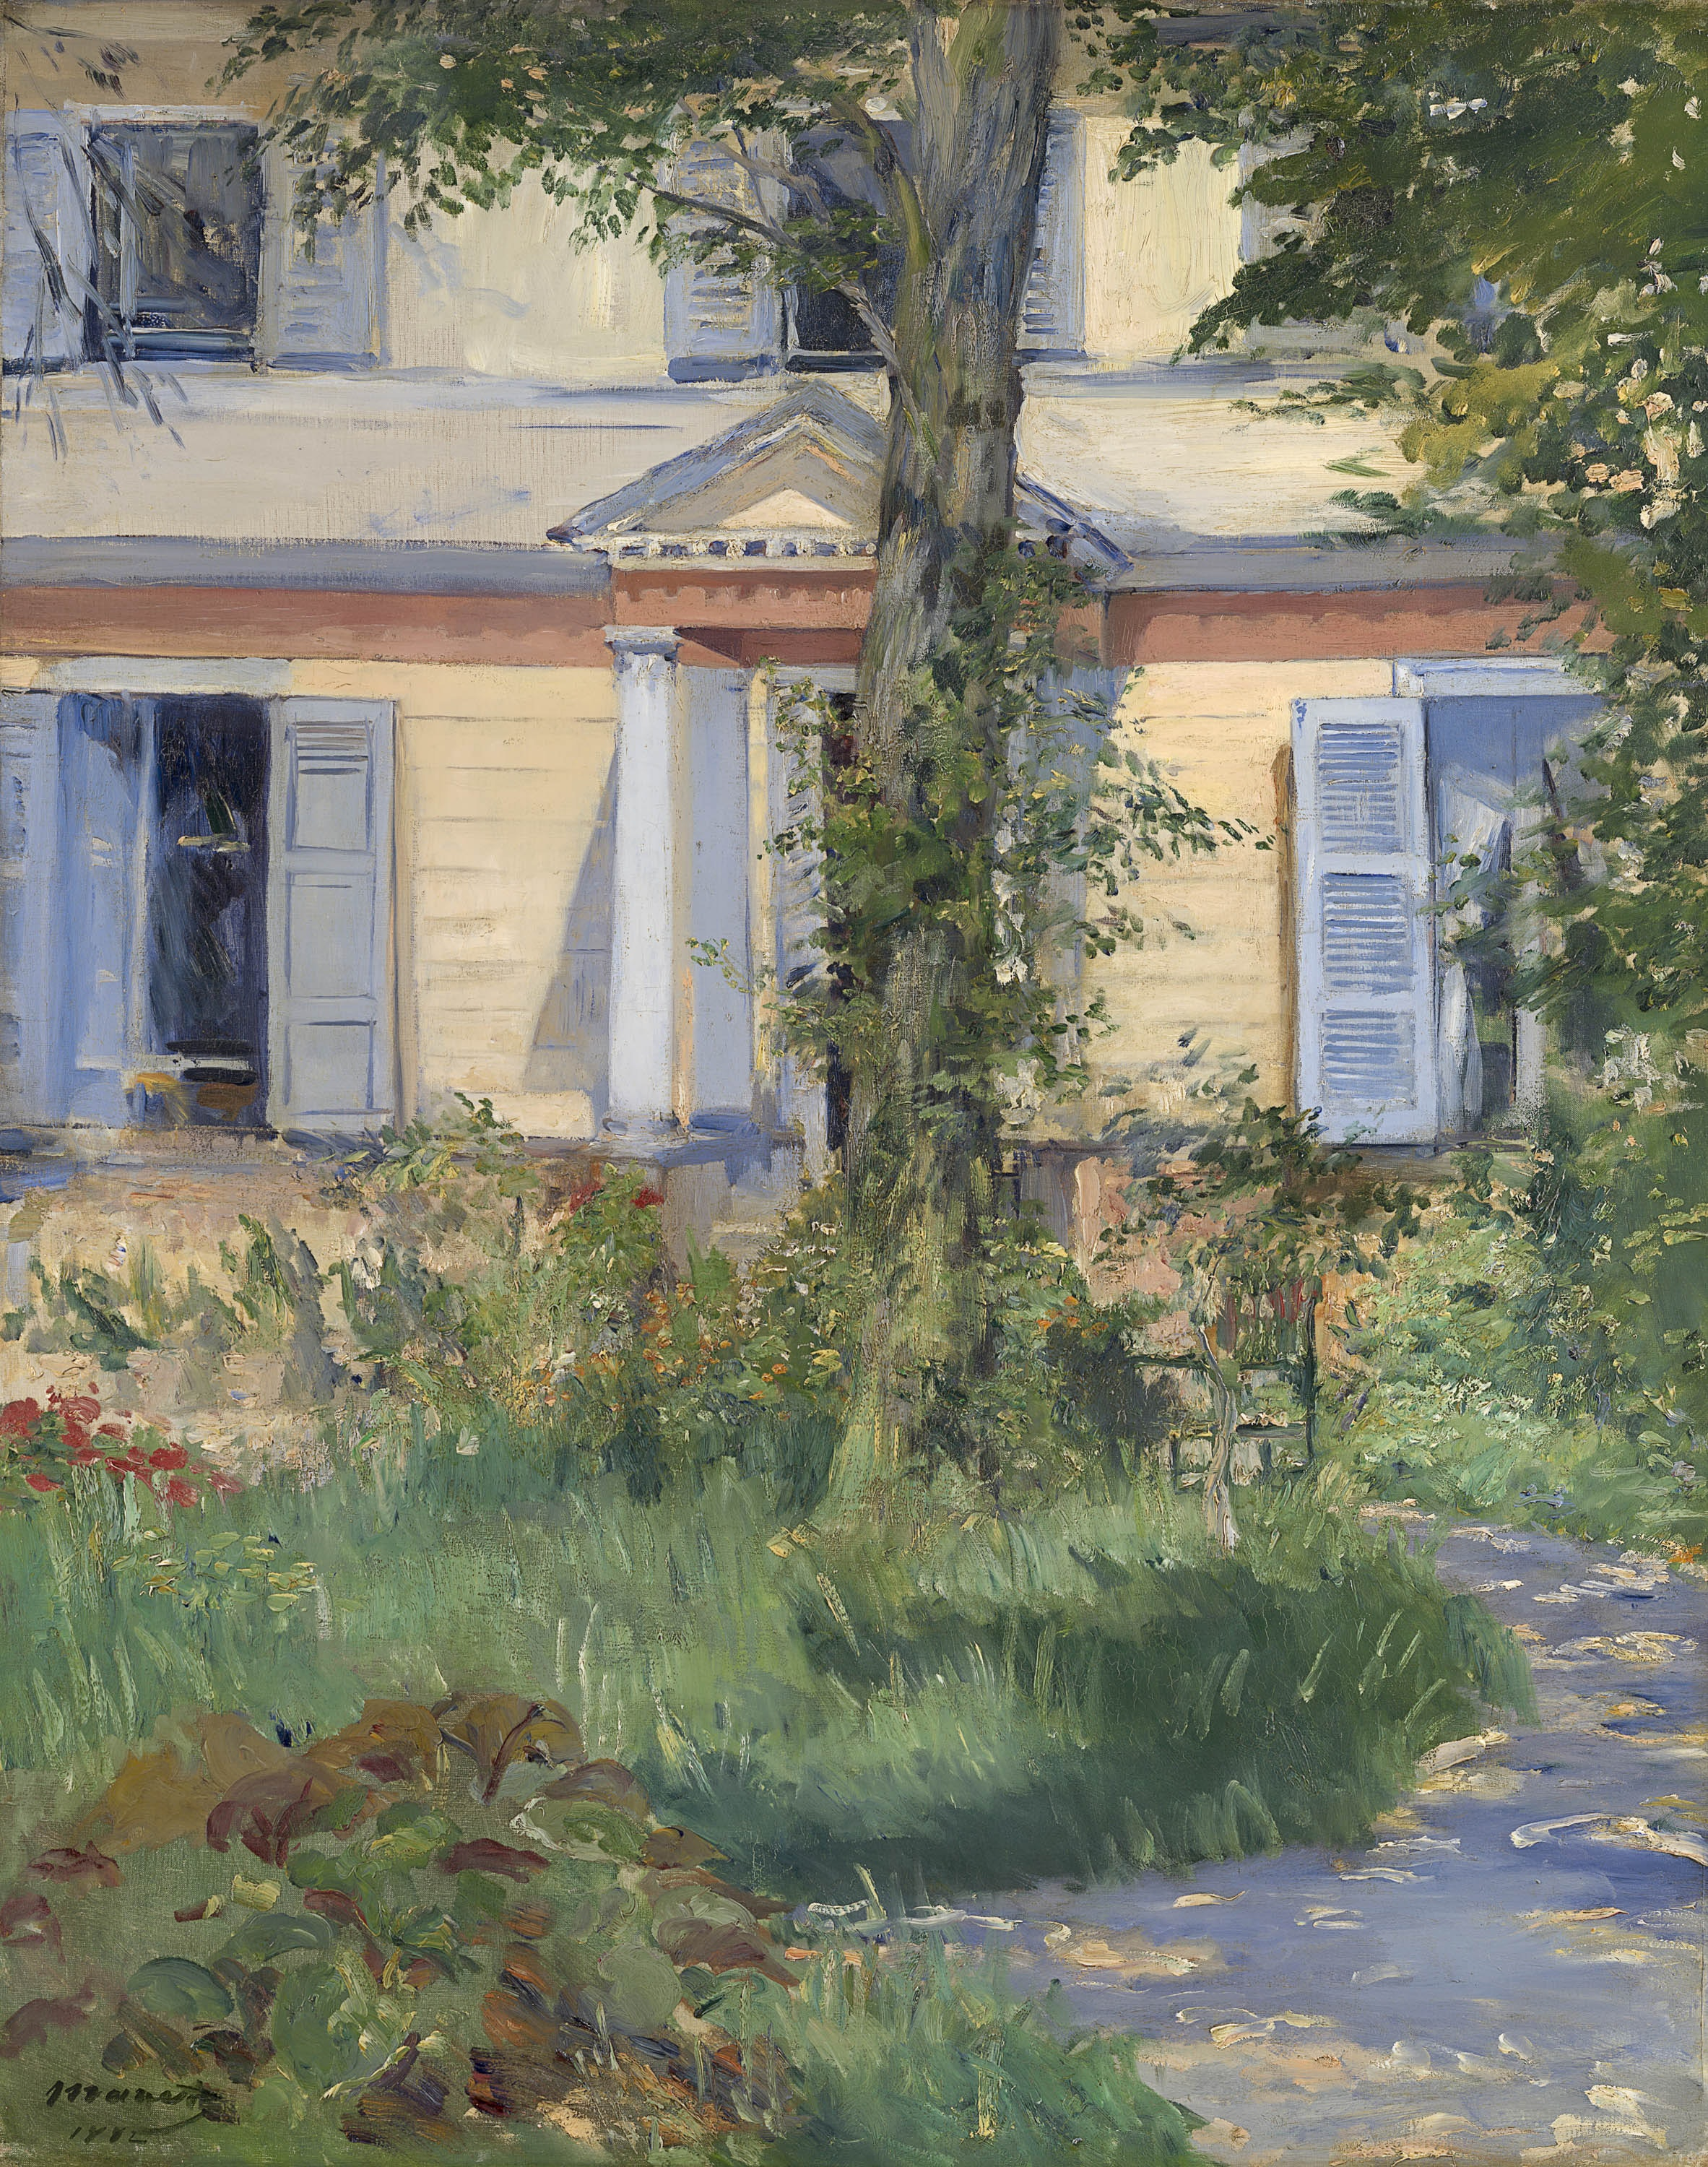 A painting shows a pink house through a lushly planted garden.